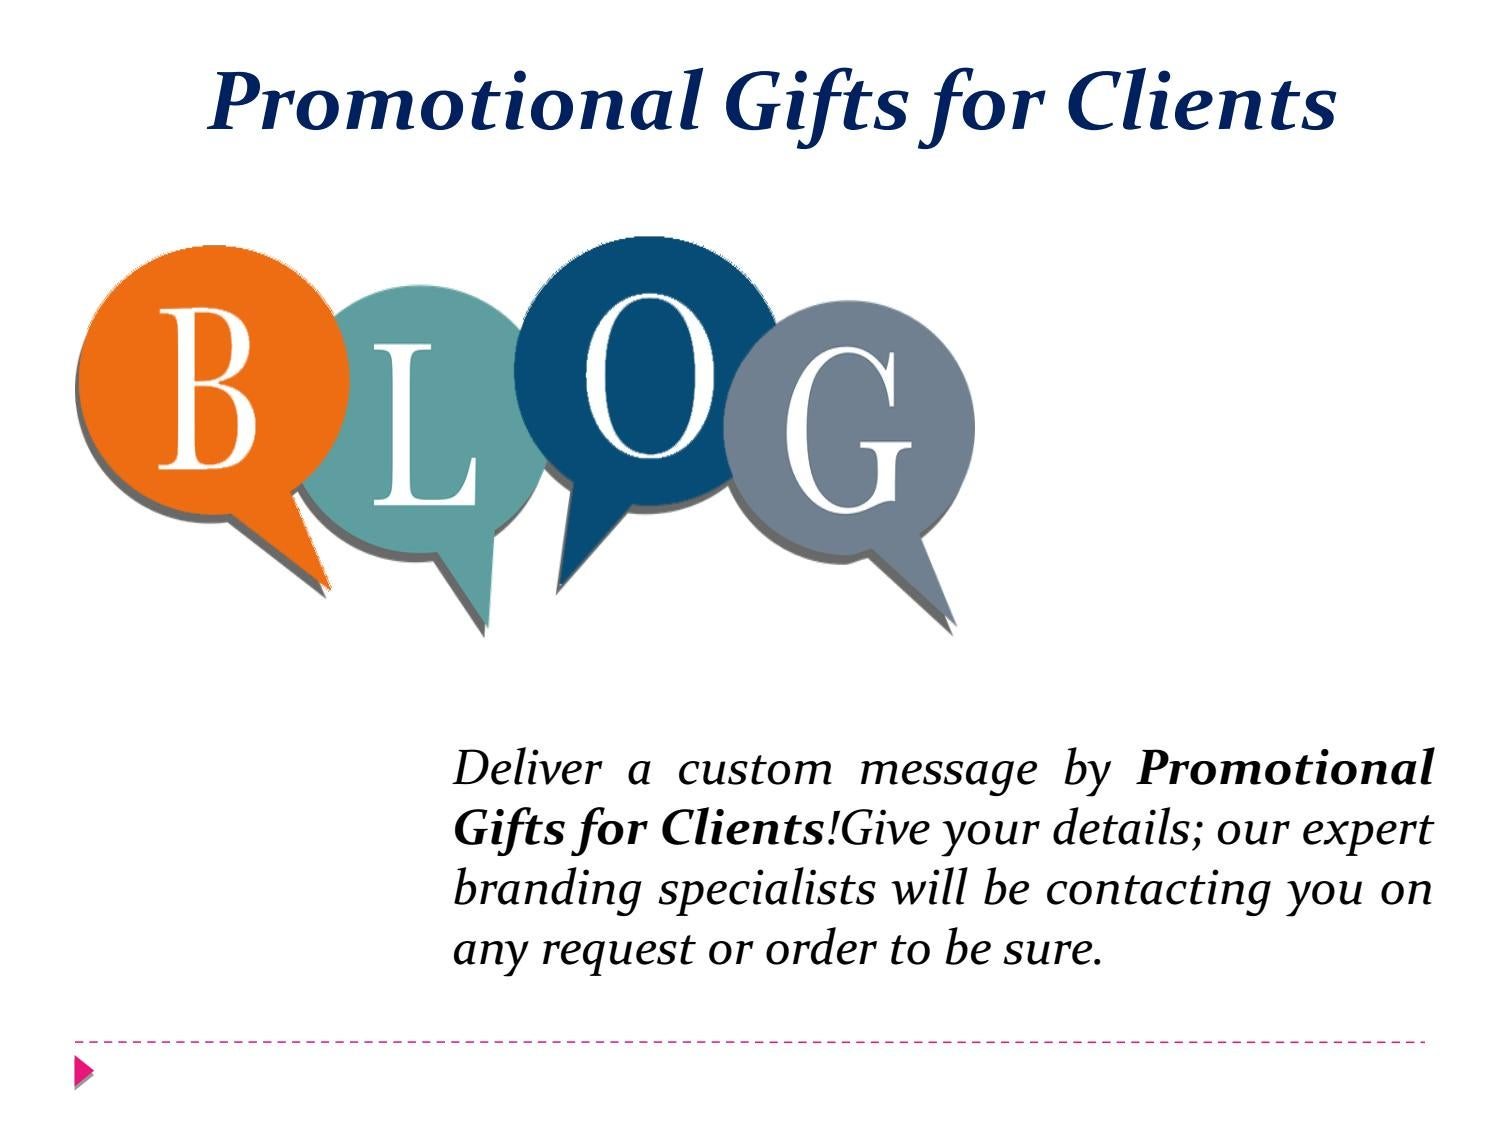 Promotional Gifts for Clients by promowebsiteonline - issuu